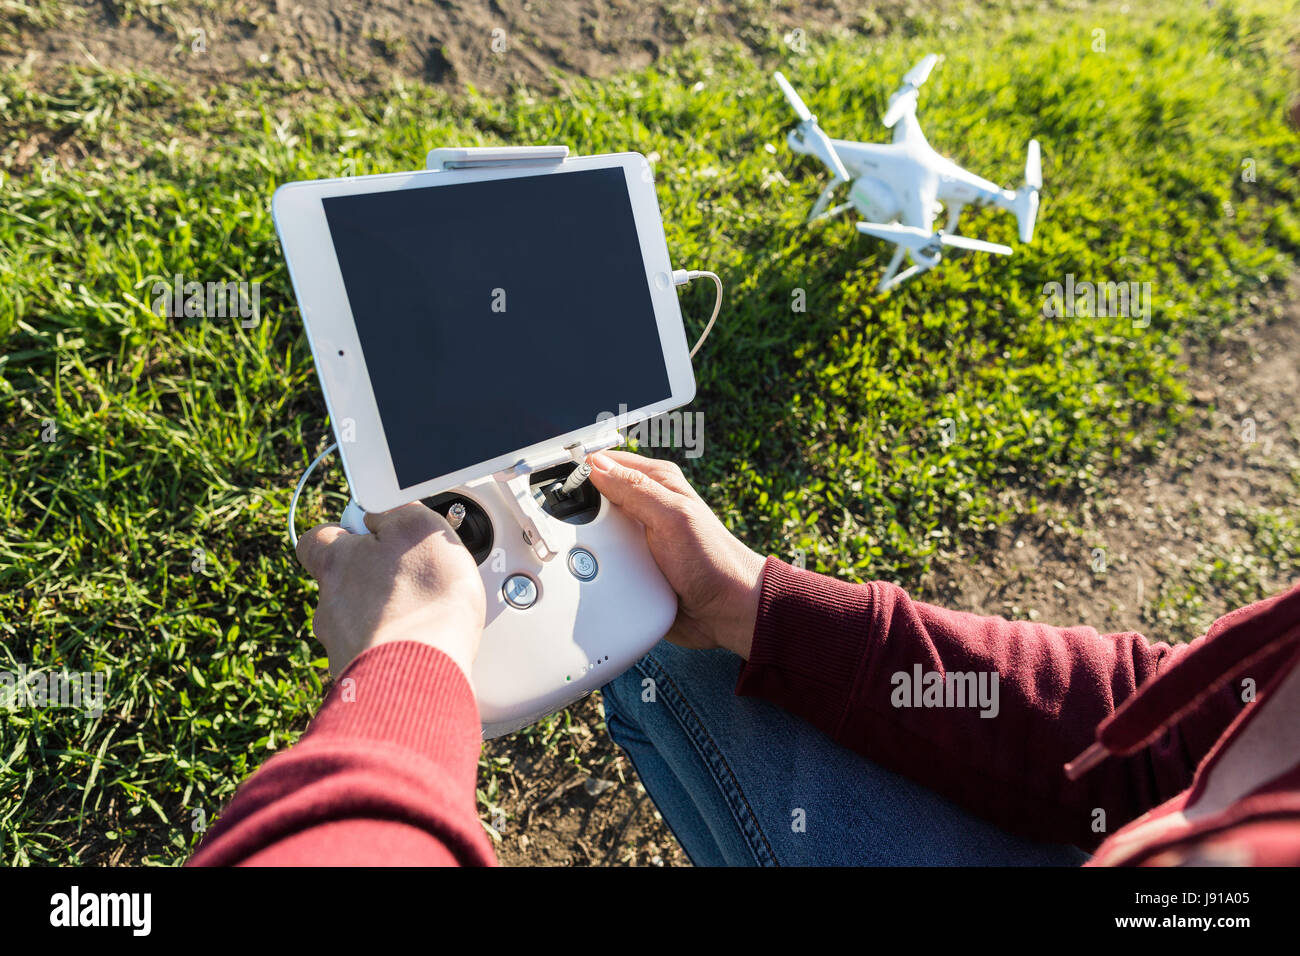 quadcopter flights outdoors, aerial imagery and tech hobby concept - hands of pilot with remote control, tablet - Stock Image